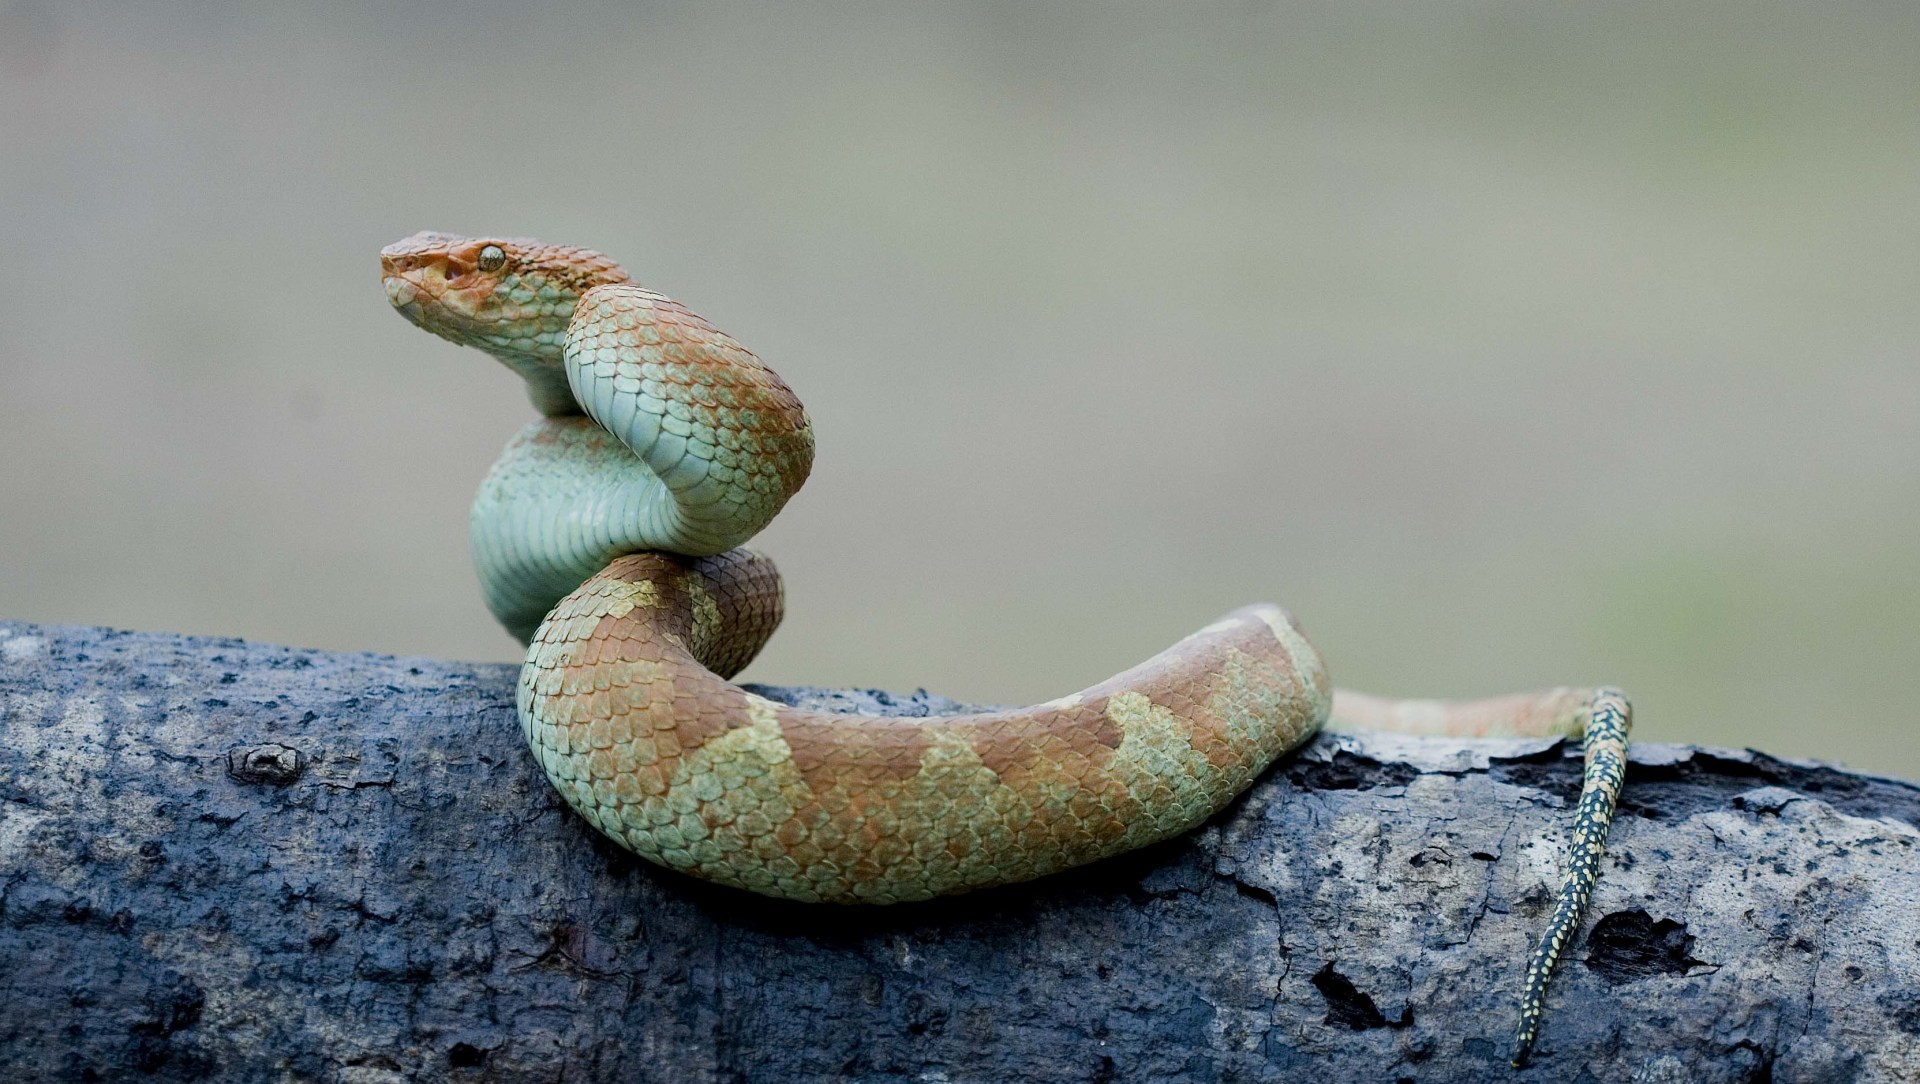 Wardens of Venom: The Exquisite Vipers of South India